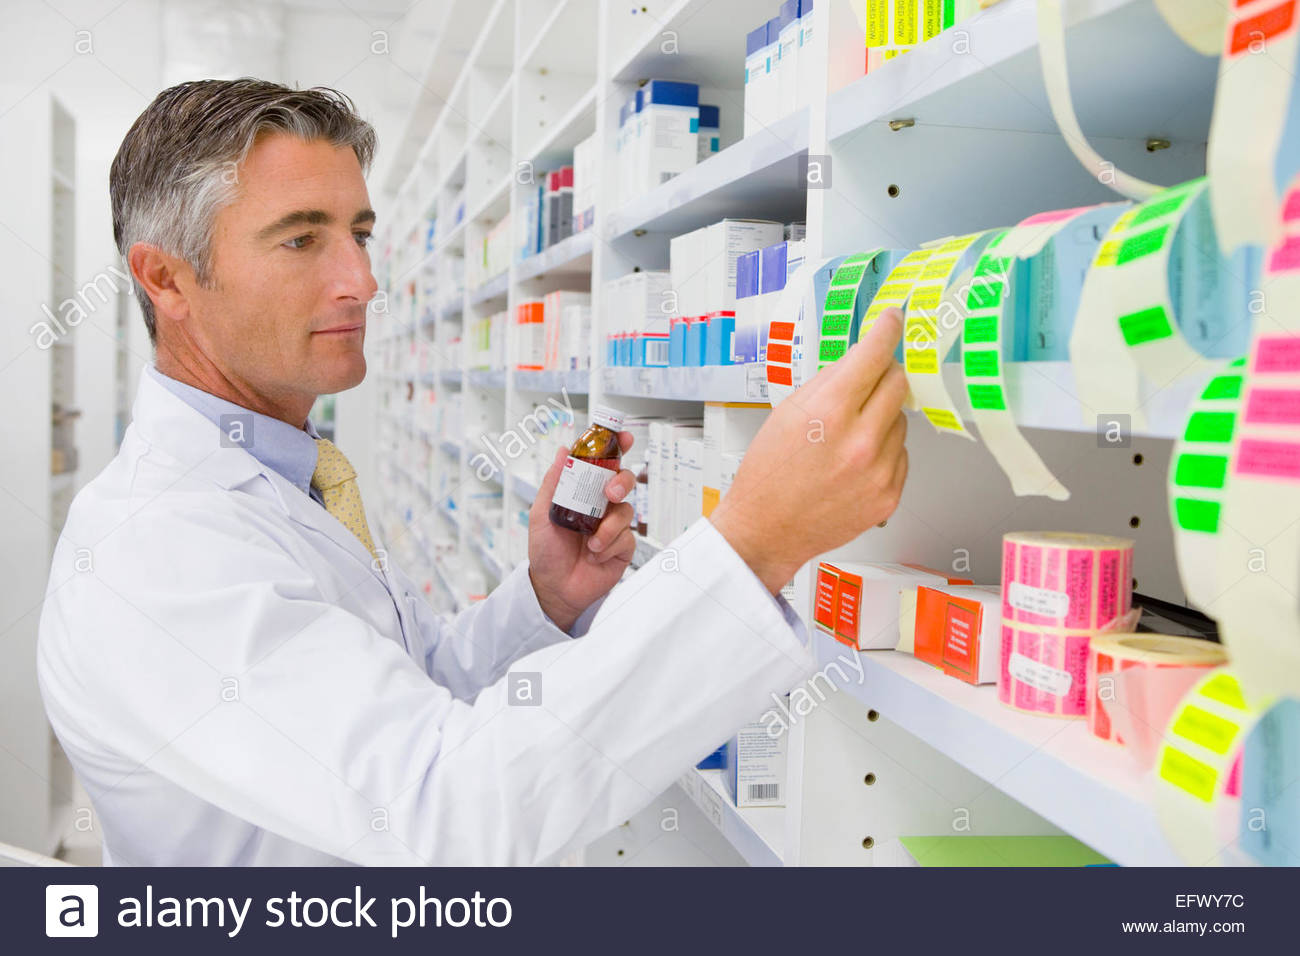 Pharmacist holding medication pot looking at labels on pharmacy shelf - Stock Image